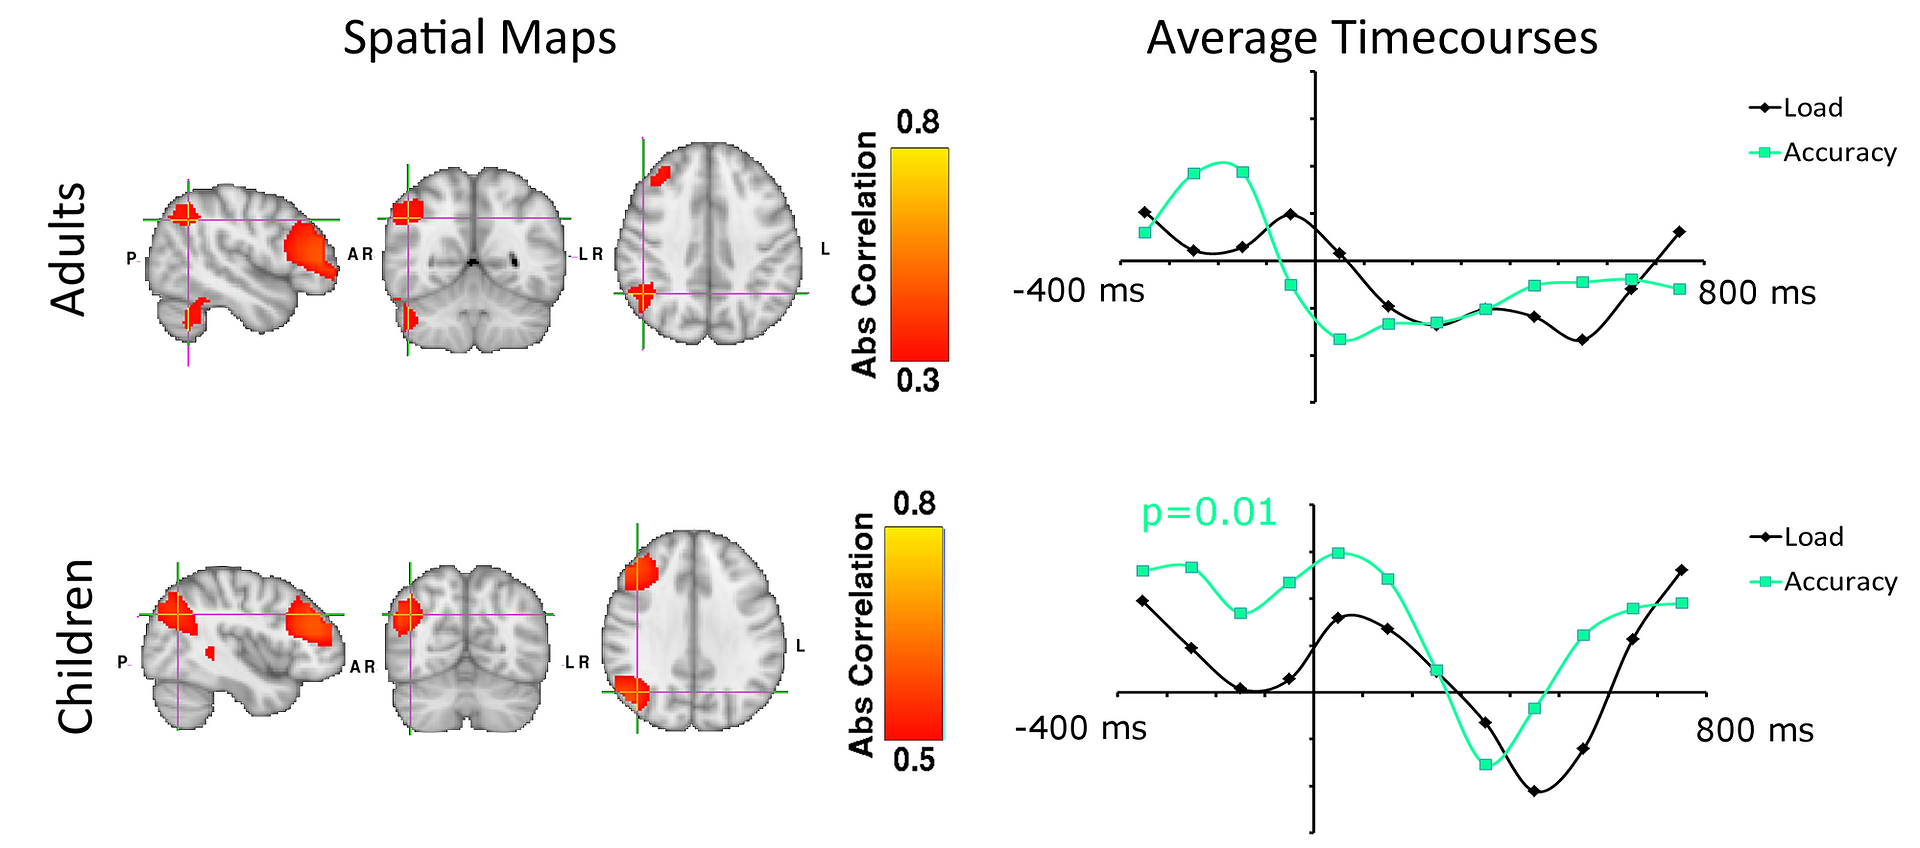 The neural dynamics of fronto-parietal networks in childhood revealed using magnetoencephalography.  Astle, Luckhoo, Woolrich, Kuo, Nobre, Scerif.  Cerebral Cortex